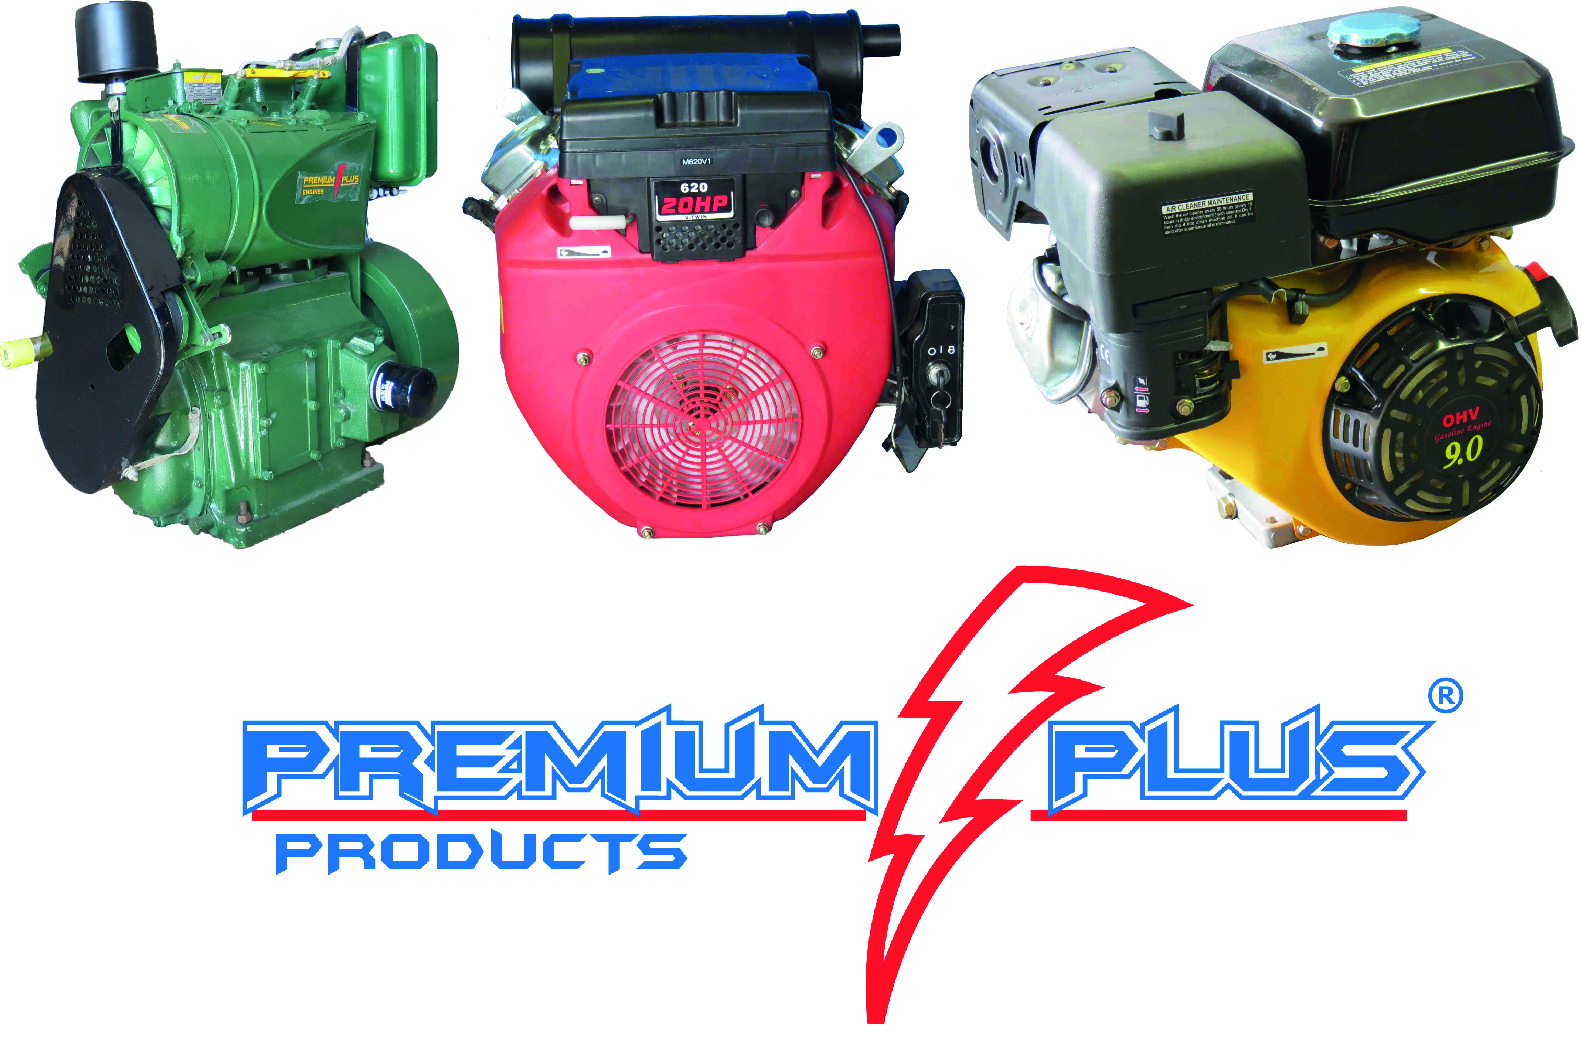 Premium Plus Engines